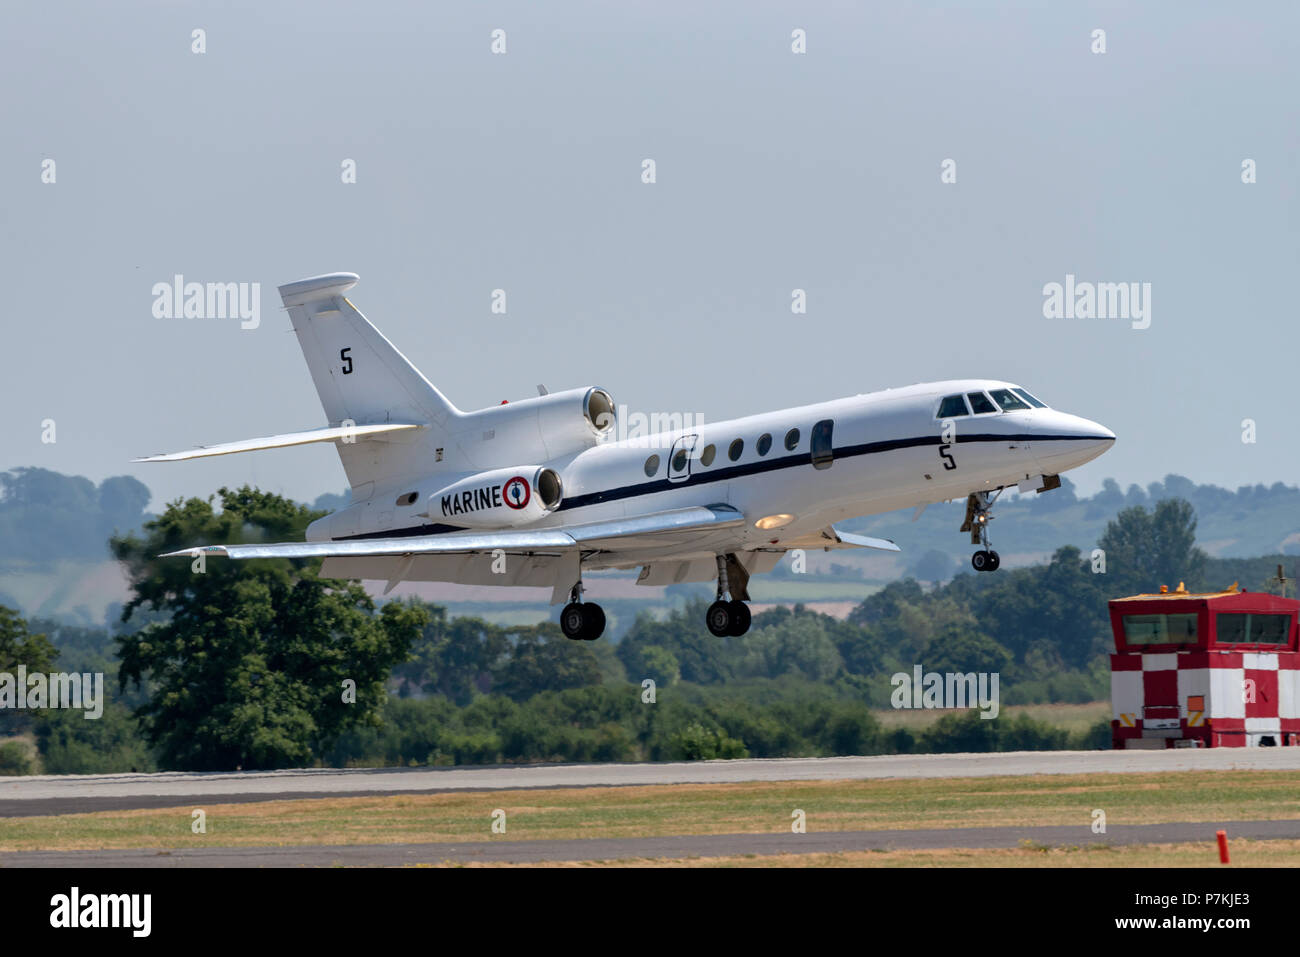 French Navy Falcon 50M landing at Yeovilton, Somerset UK  This maritme patrol aircraft will form part of the flying display at the International Air Day  RNAS Yeovilton, Somerset, UK. - Stock Image